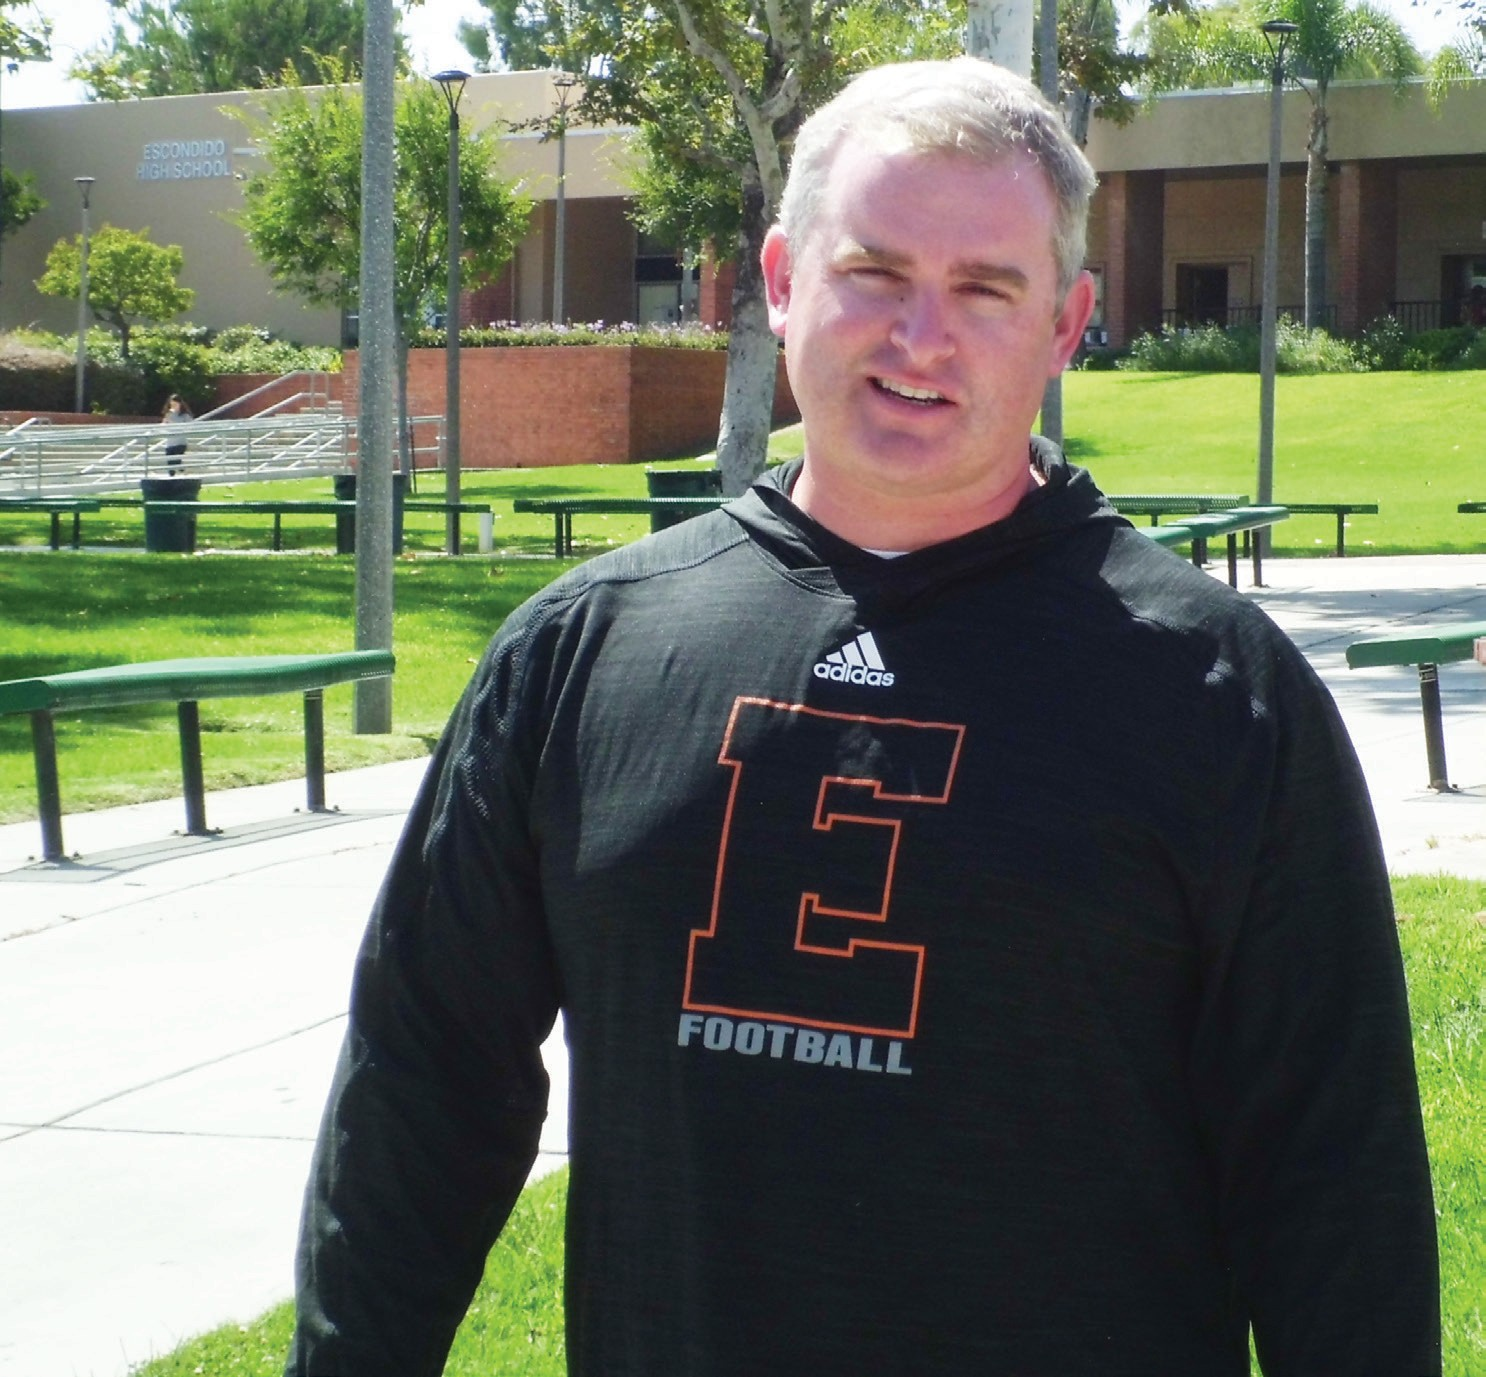 Coach Jud Bordman looks forward to the challenge of reviving the Escondido football program.